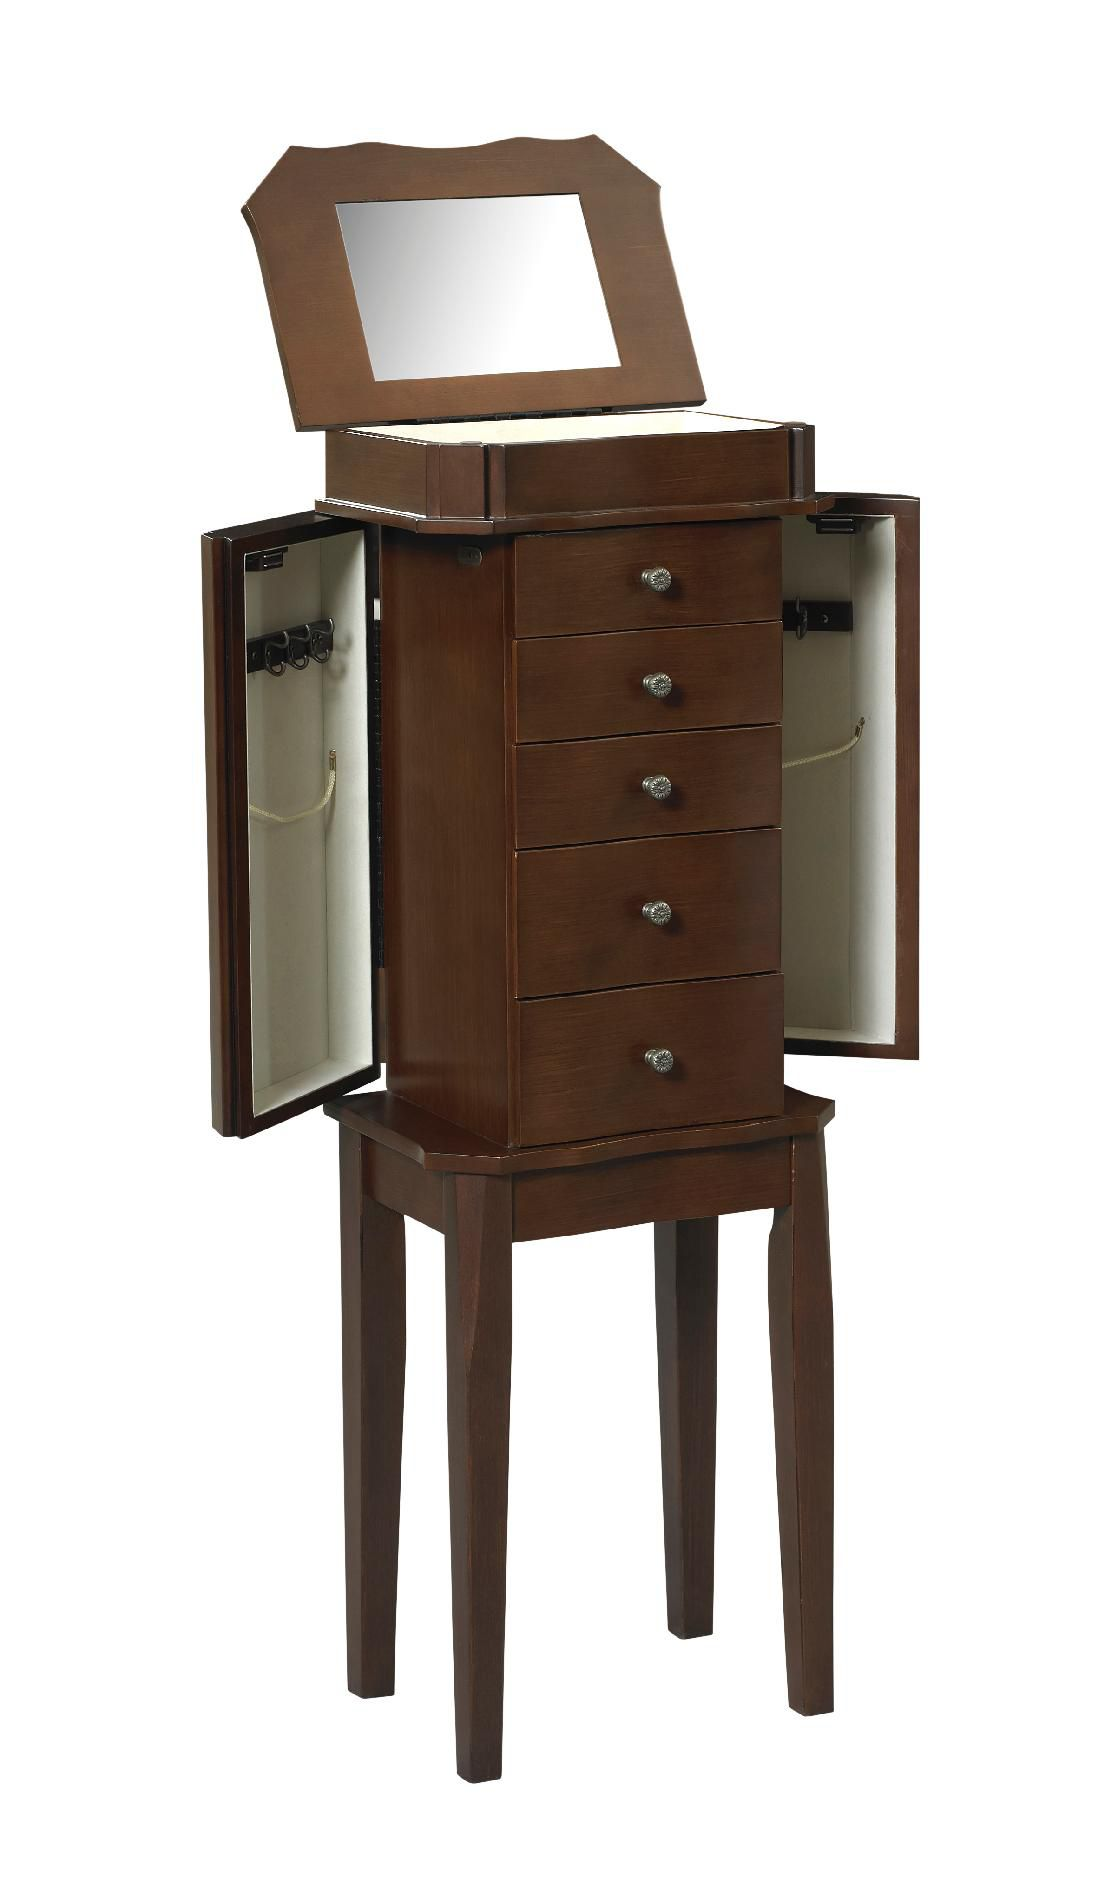 Paige Jewelry Armoire